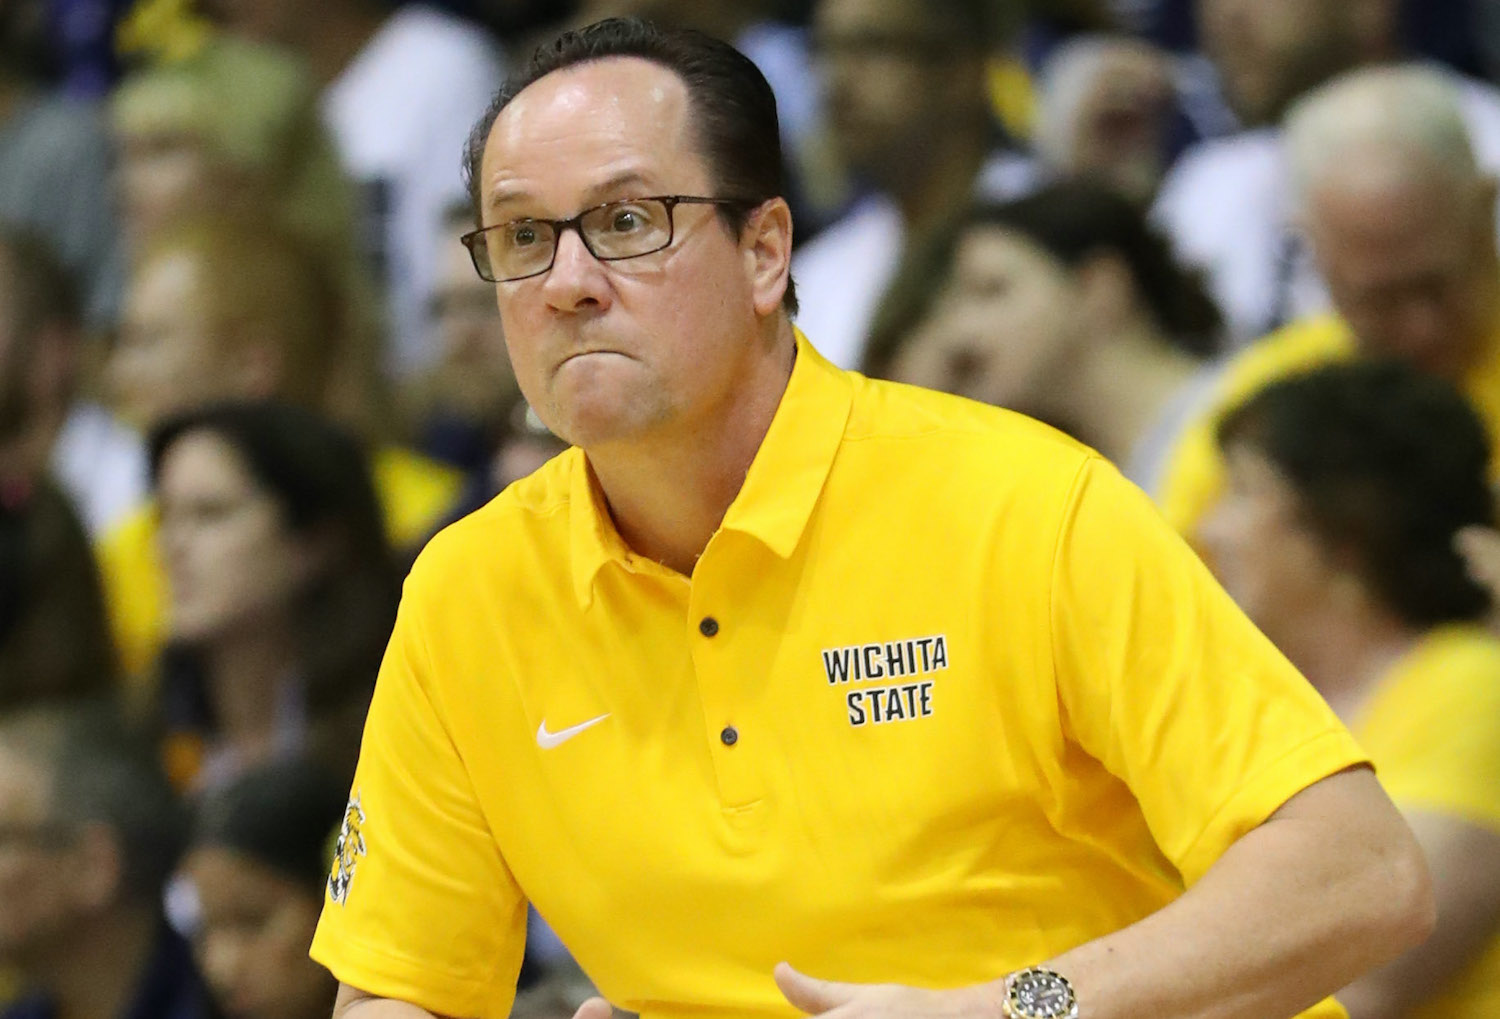 LAHAINA, HI - NOVEMBER 21: Head coach Gregg Marshall of the Wichita State Shockers reacts during the first half of the game against the Marquette Golden Eagles during the Maui Invitational at the Lahaina Civic Center on November 21, 2017 in Lahaina, Hawaii. (Photo by Darryl Oumi/Getty Images)